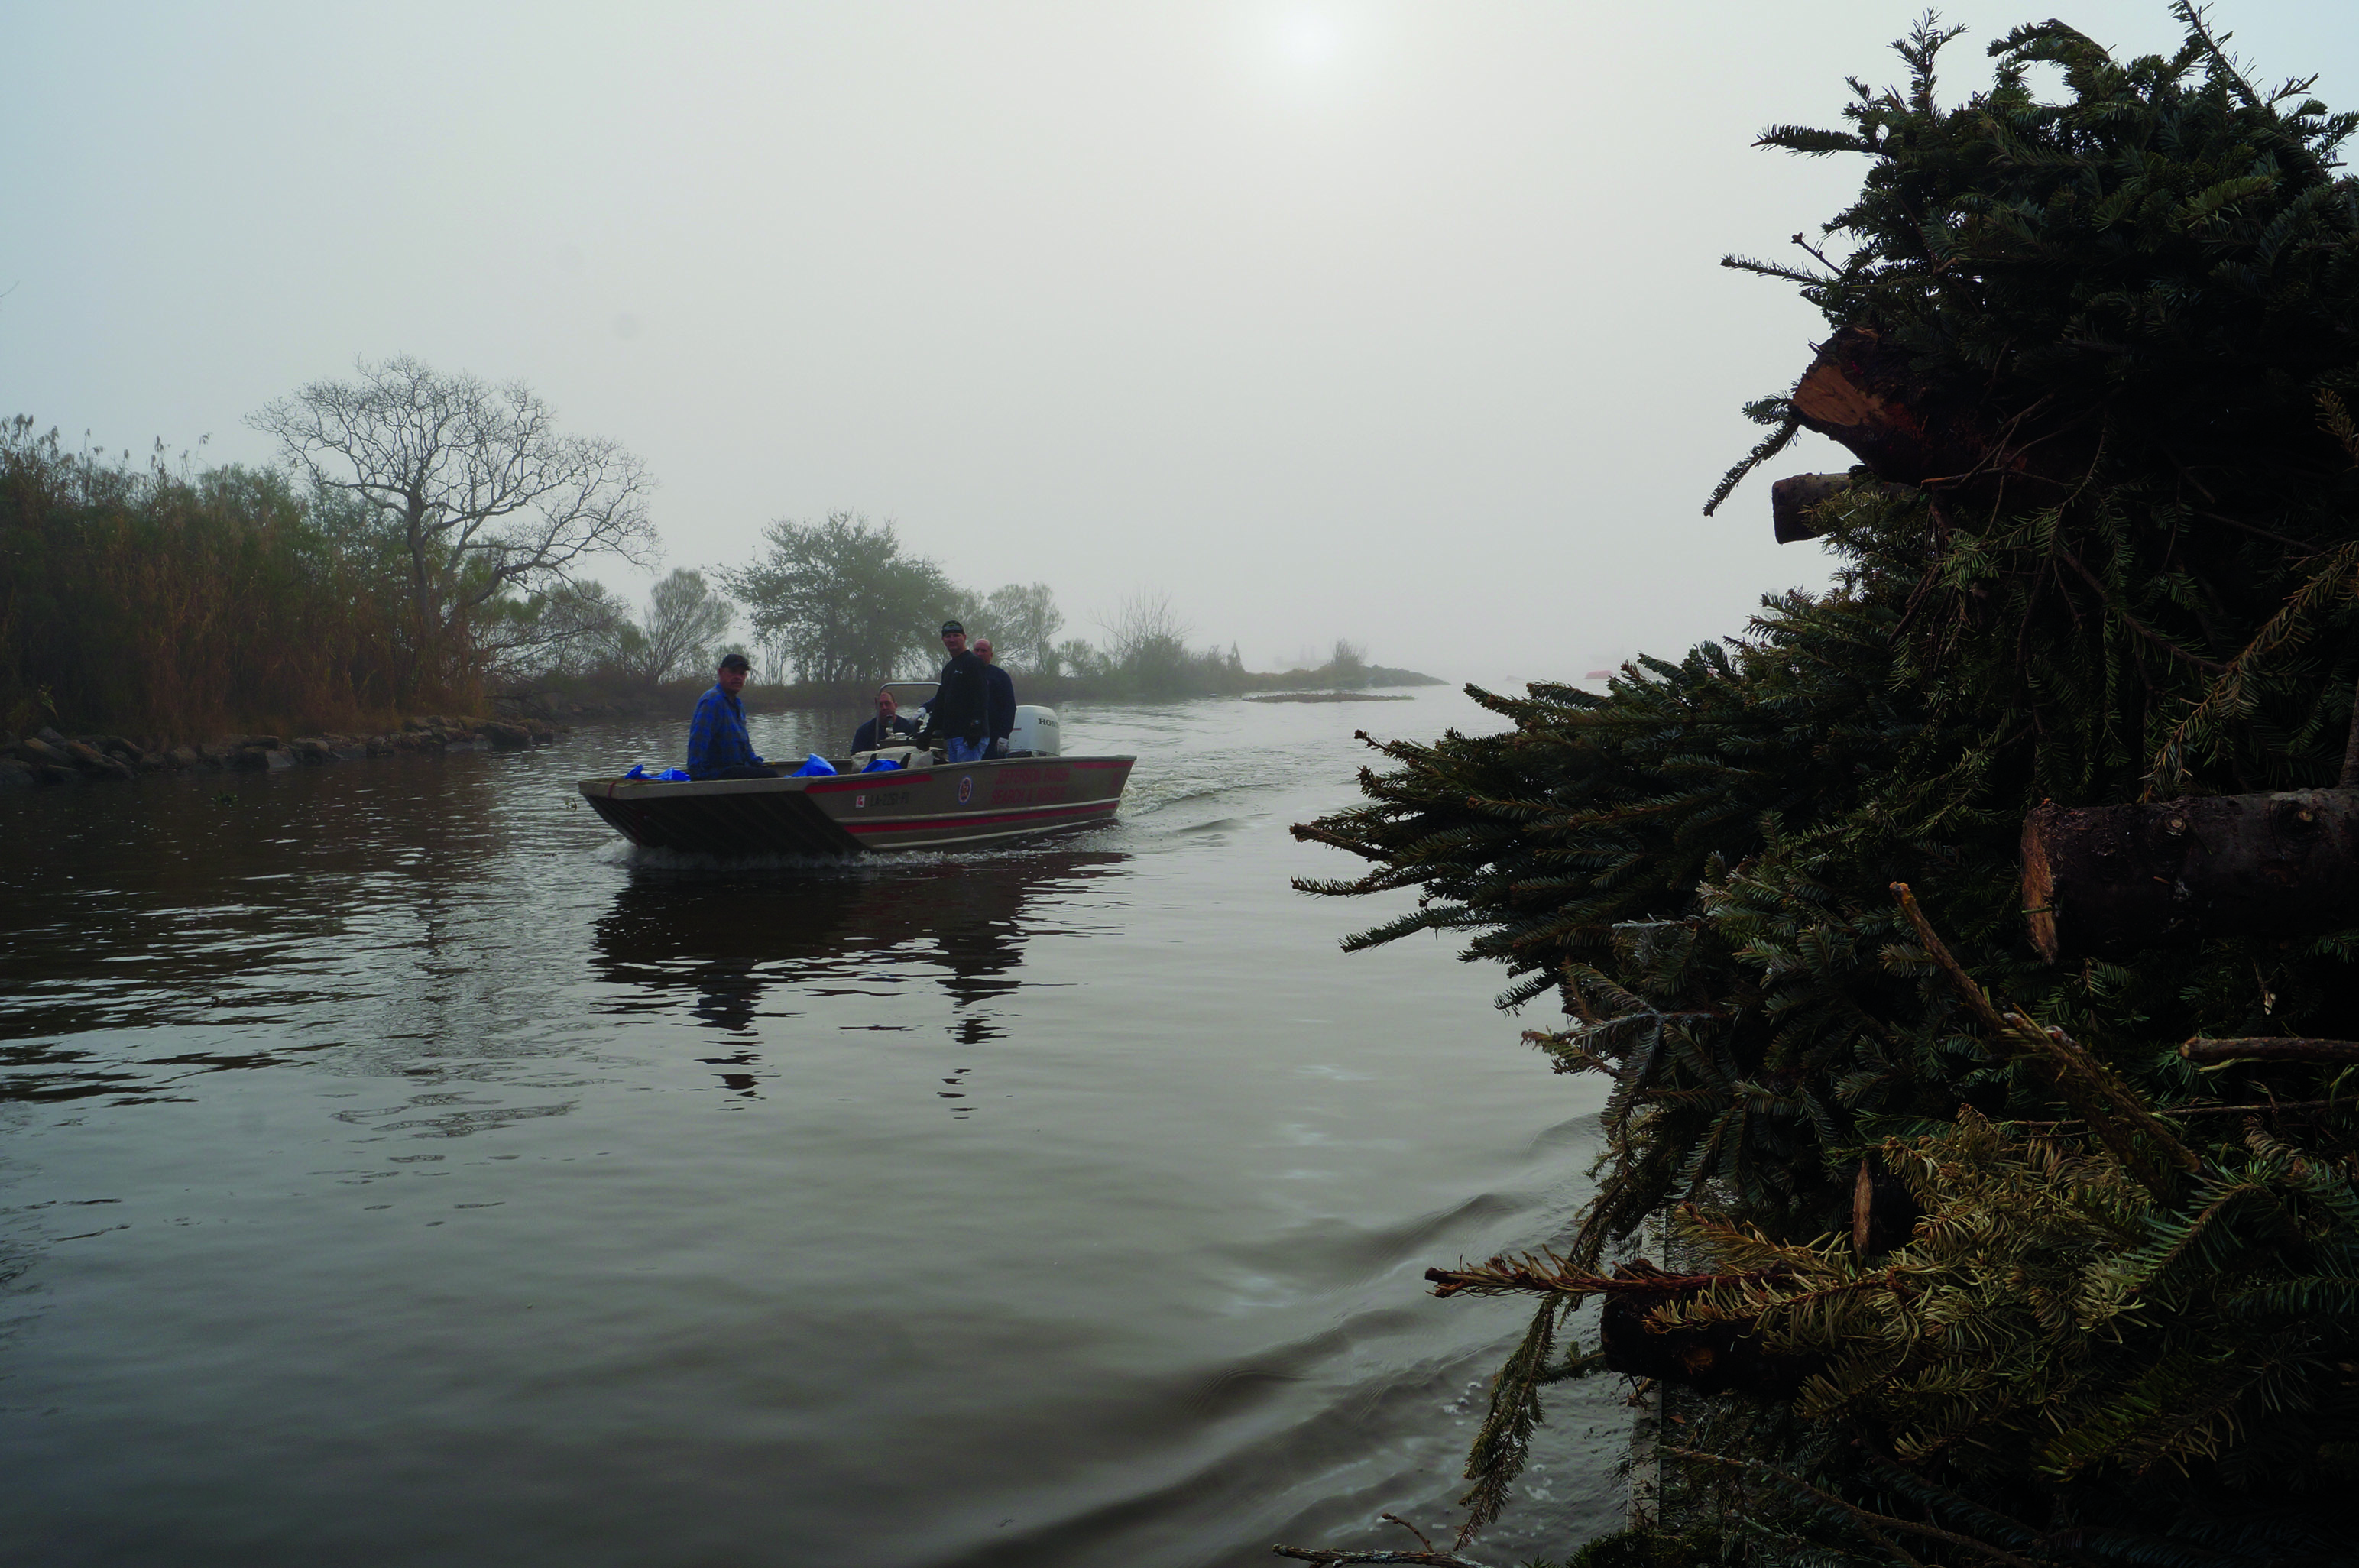 A+boat+of+volunteers+returns+to+Cochiaras+Marina+in+Lafitte%2C+Louisiana%2C+Jan.+14%2C+after+dropping+trees+into+special+%22cribs%22+in+the+bayou.+The+Christmas+trees+break+the+waves+in+the+area%2C+slowing+coastal+erosion+and+rebuilding+marshland.+Photo+credit%3A+Colleen+Dulle